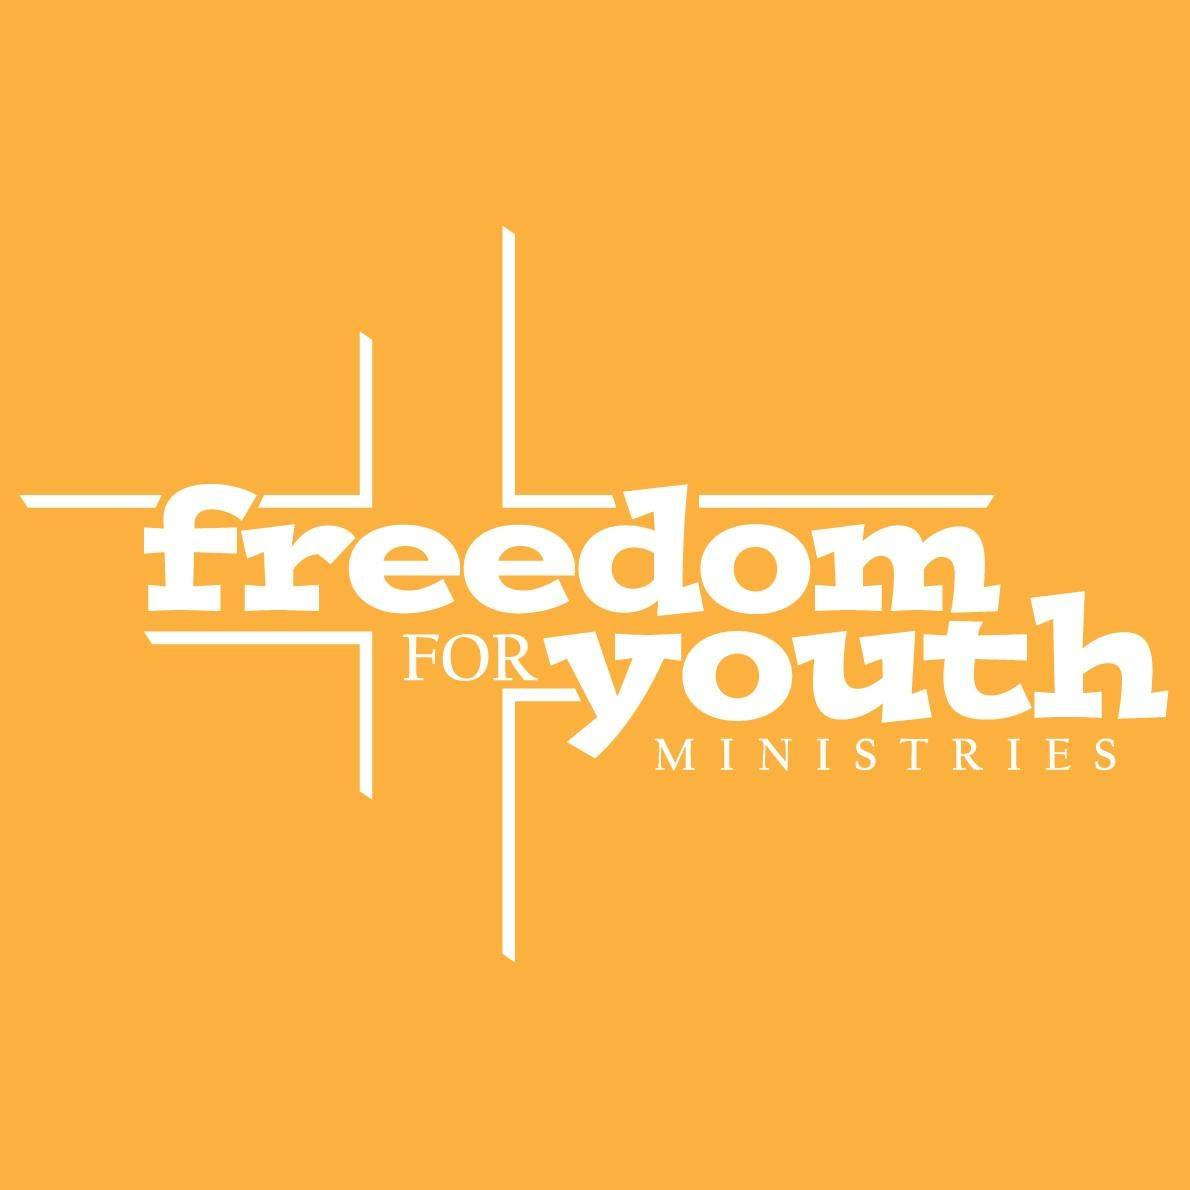 Freedom for Youth Ministries